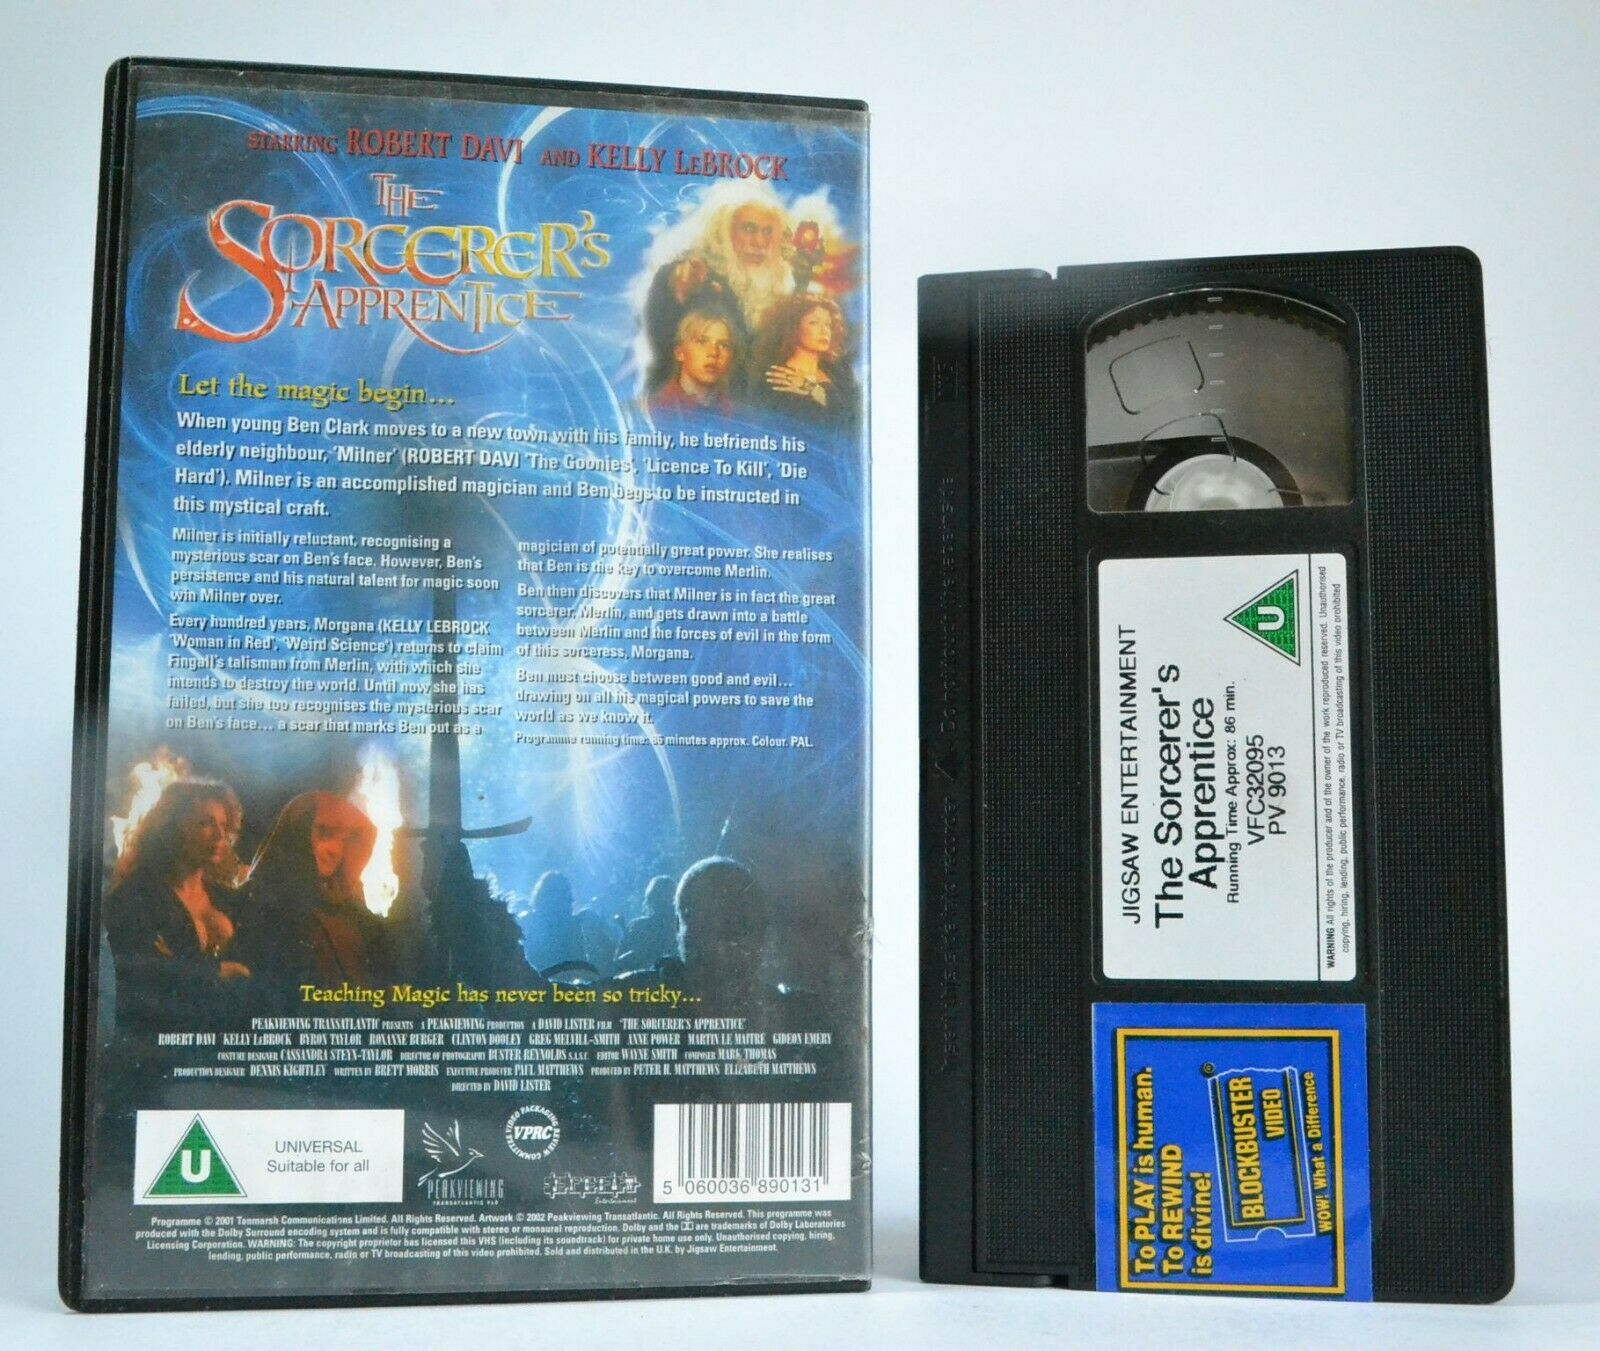 The Sorcerer's Apprentice - Magical Fantasy - Large Box - Kelly LeBrock - VHS